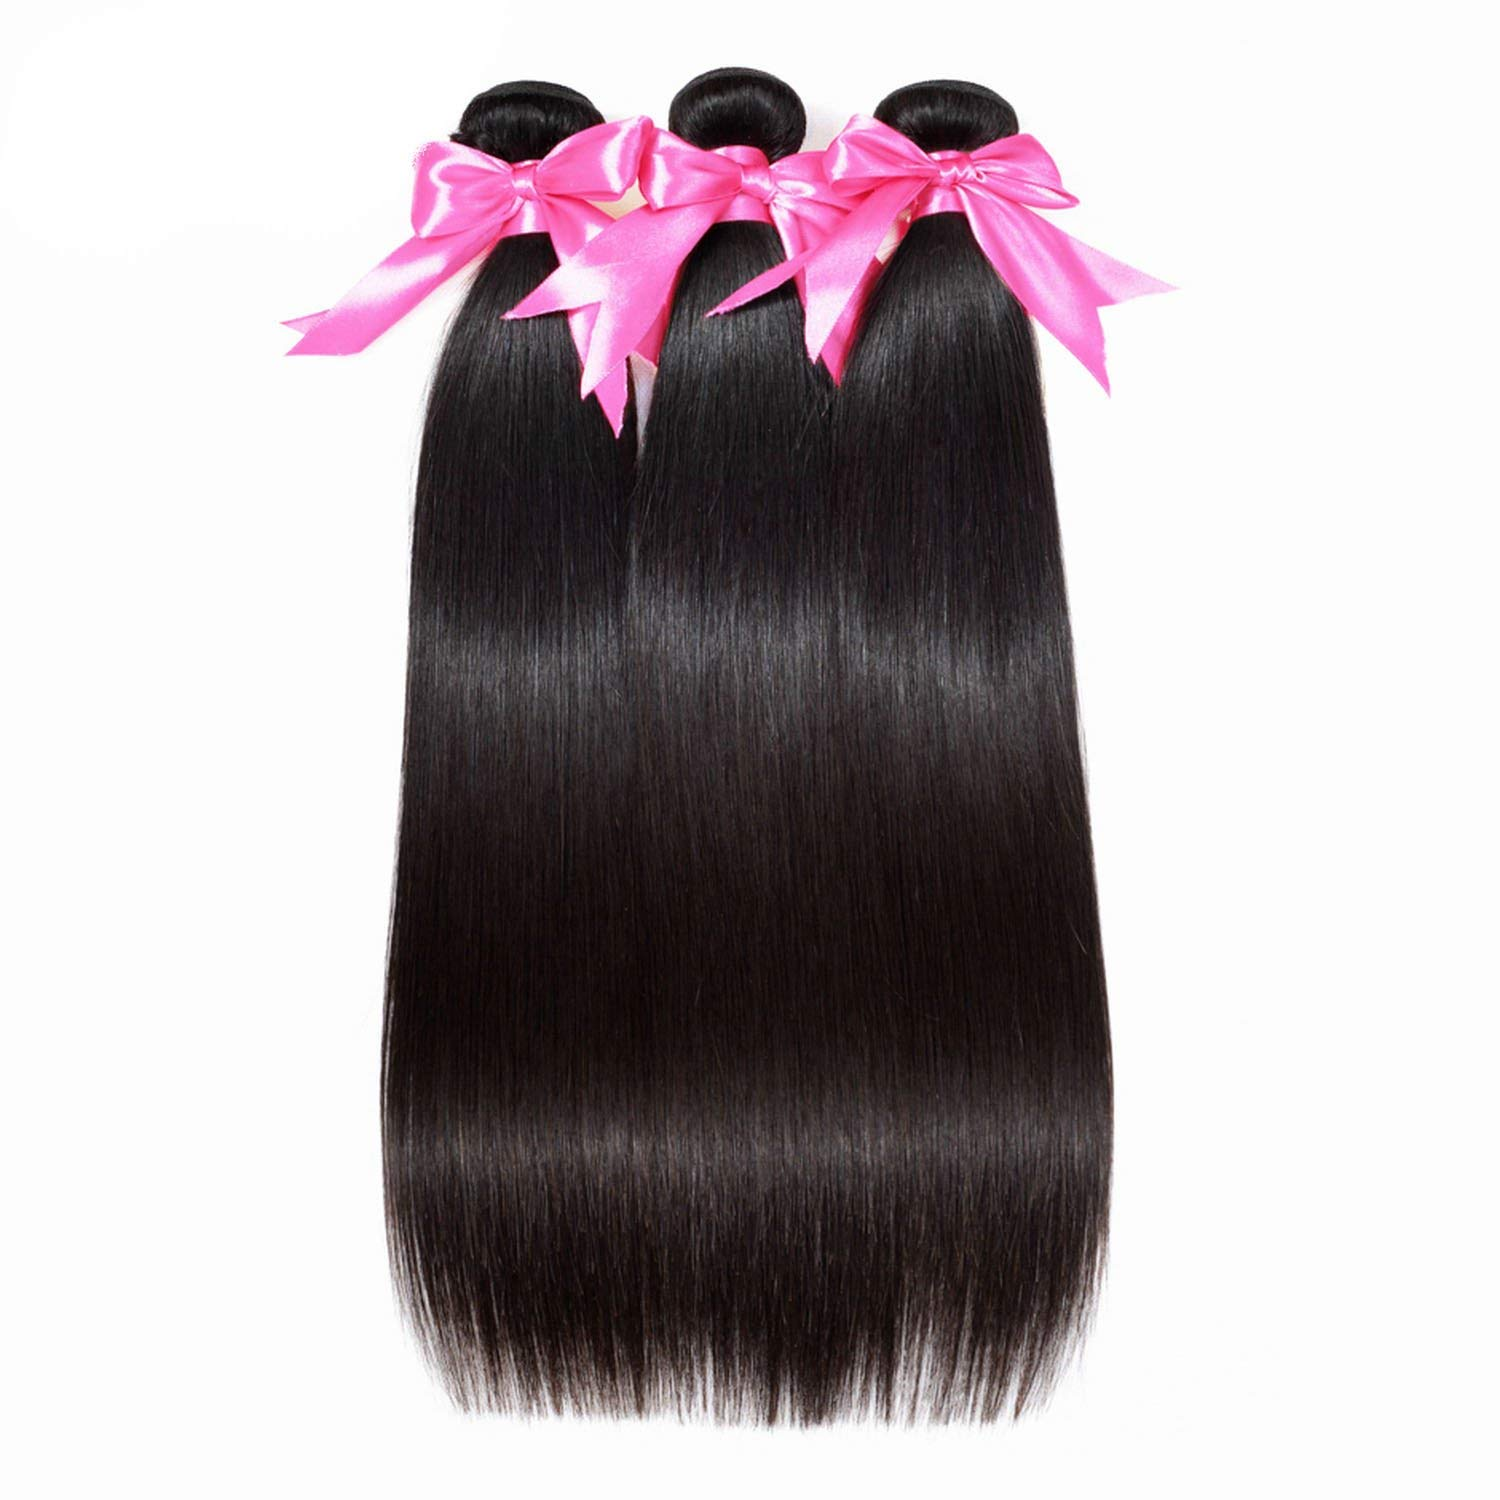 B07SPLPBTN Peony red HAIR Brazilian Straight Hair Extensions 100% Remy Hair Weave Bundles Nature Color 3 Bundles Human Hair Bundles Nature Color,Natural Color,12 12 14 713pAvhPTcL